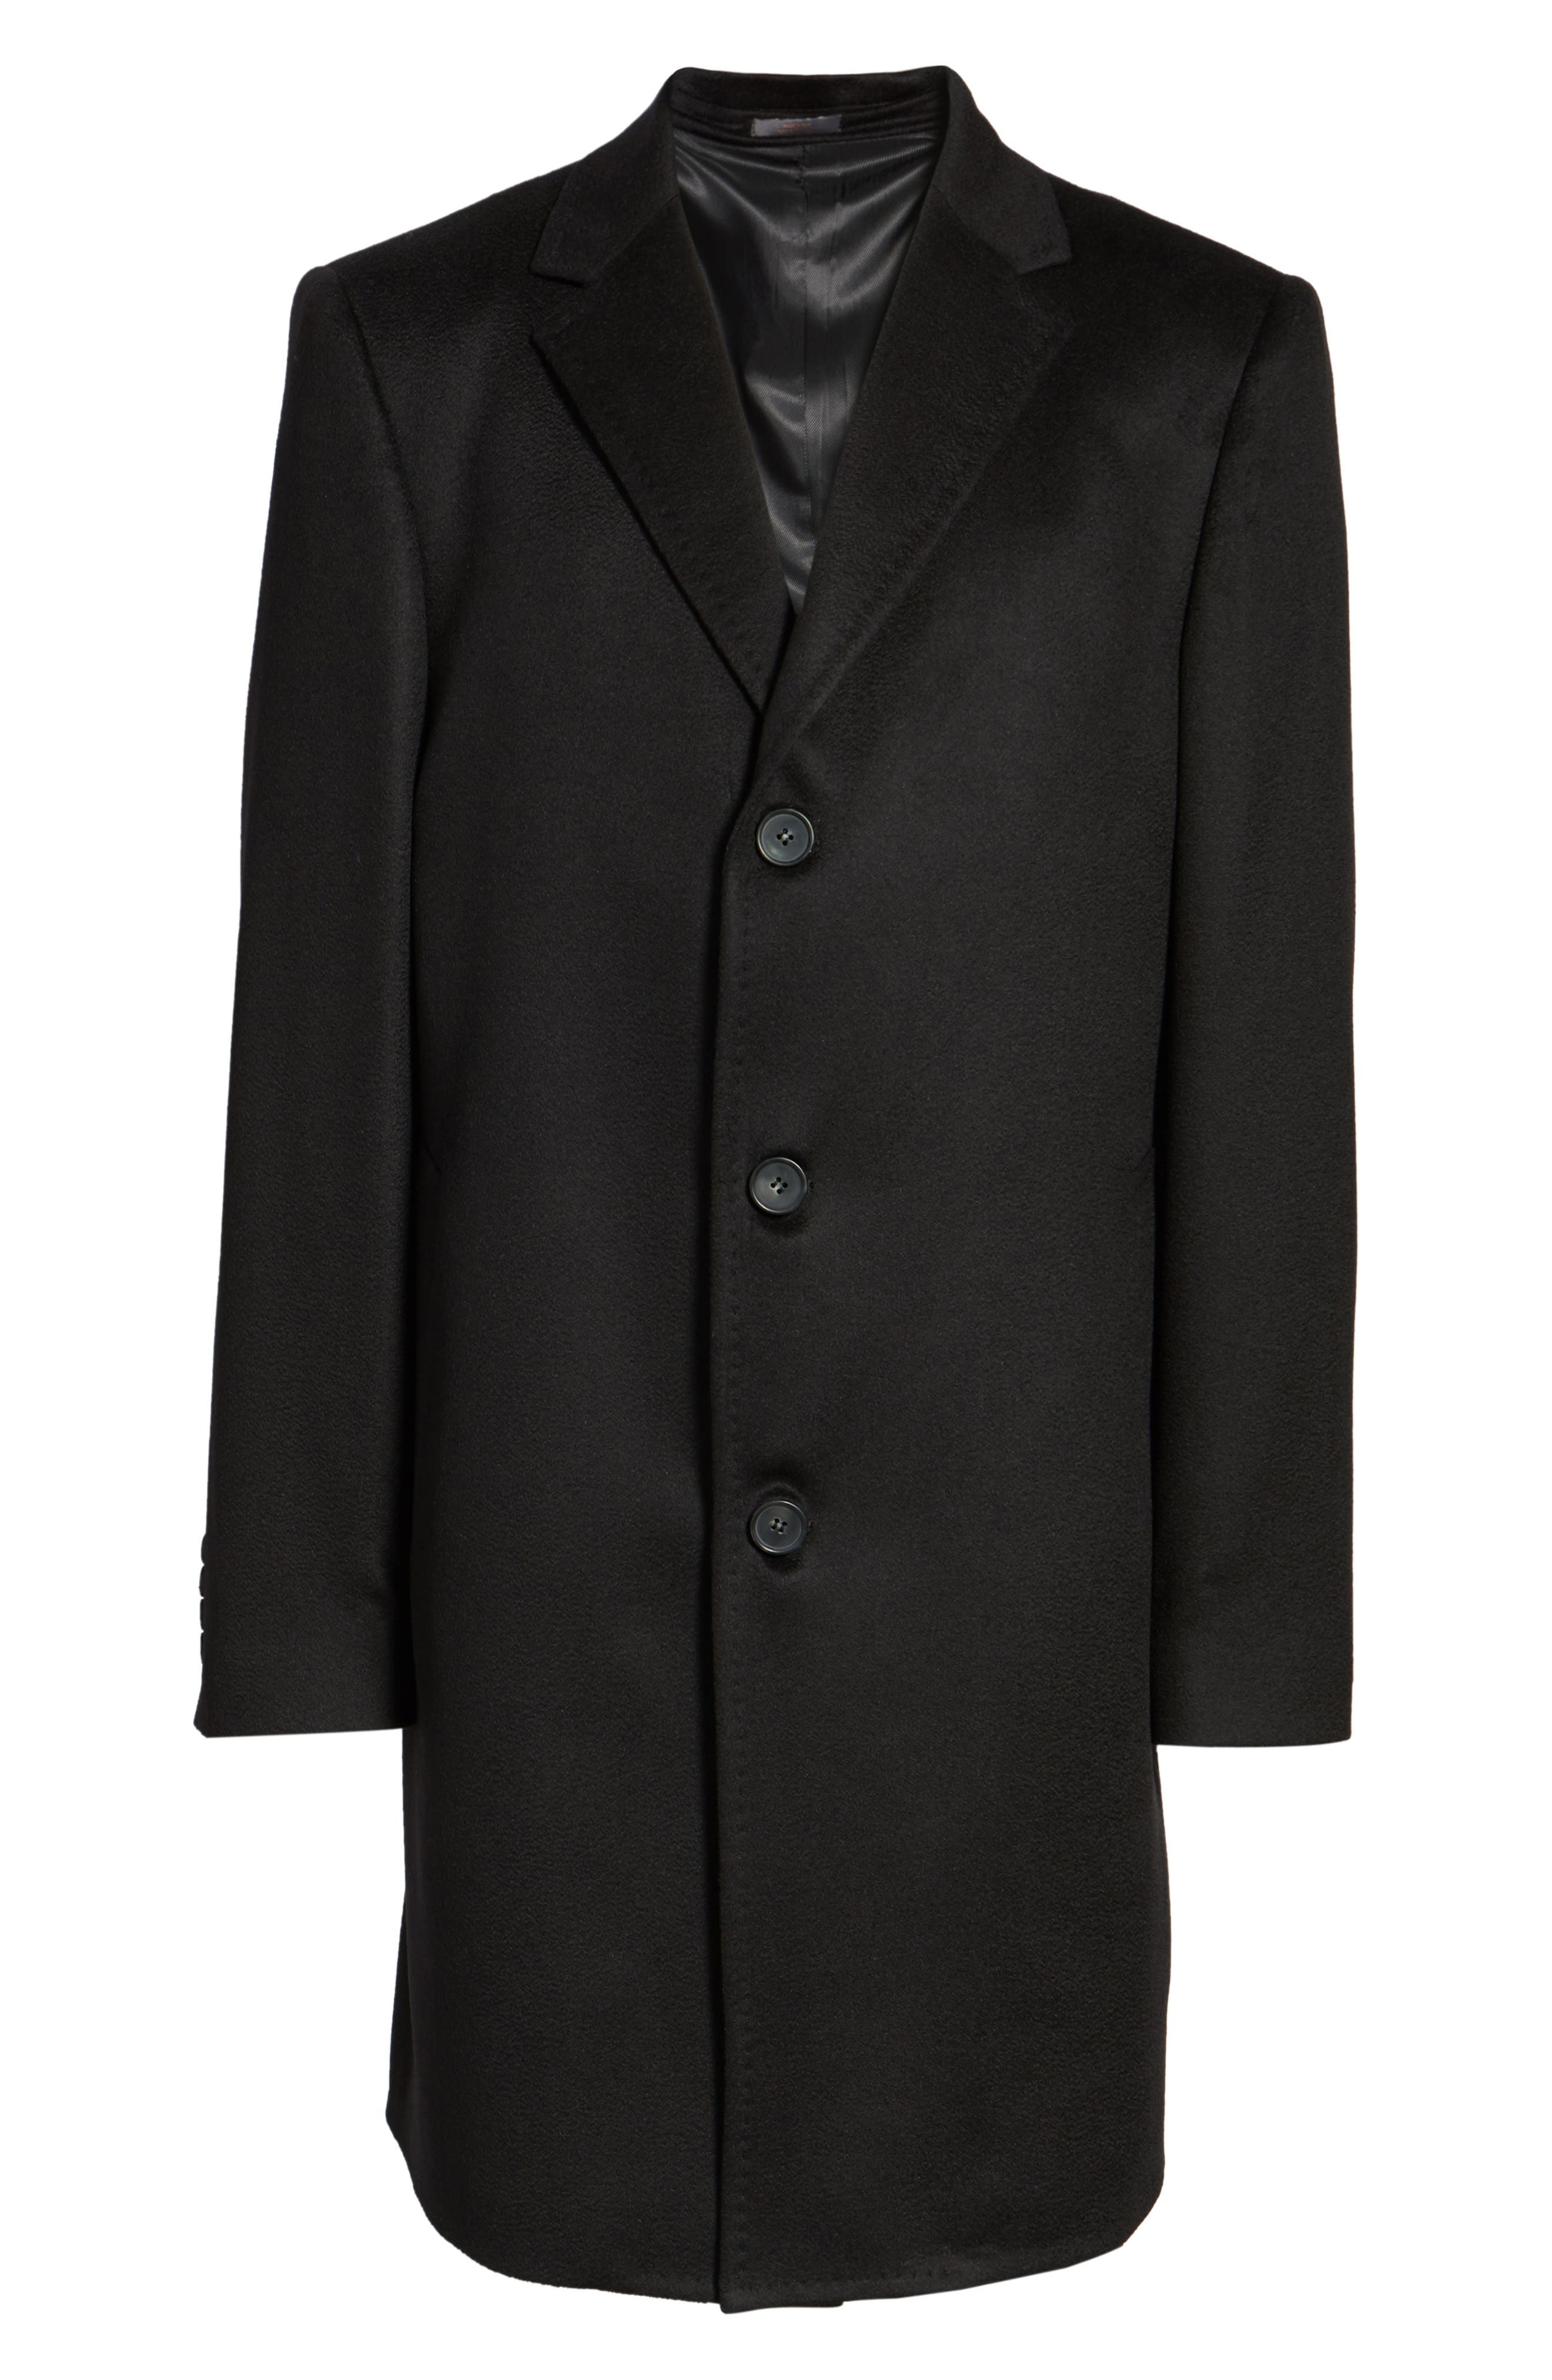 Carter Classic Fit Cashmere Overcoat,                             Alternate thumbnail 6, color,                             Black